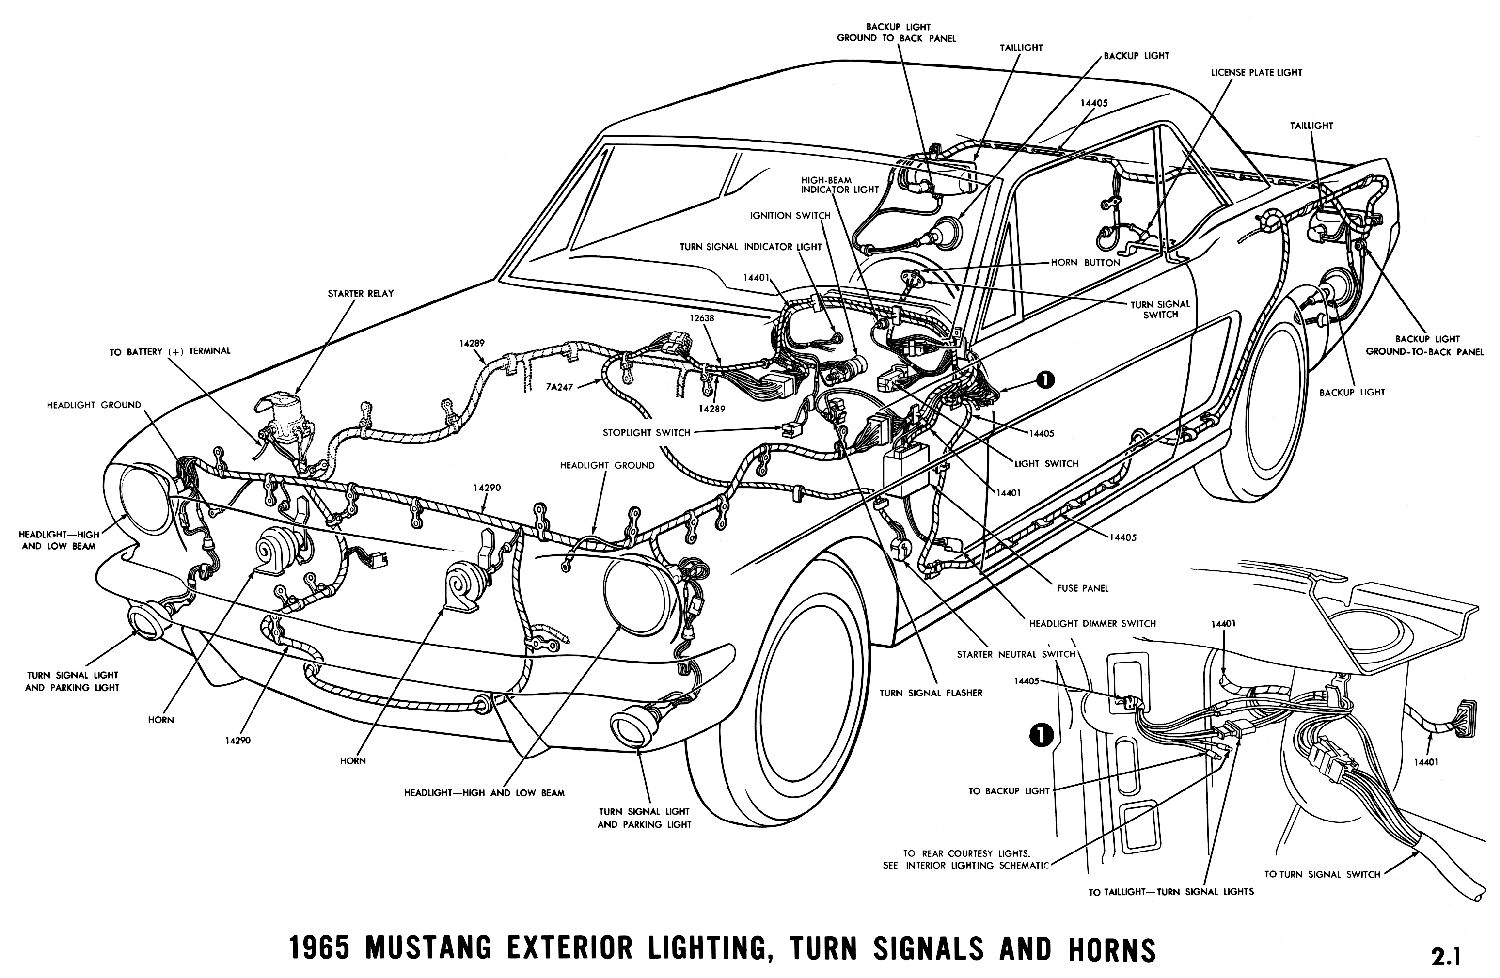 Install 67 Chevelle Ignition Wiring Diagram - Toyskids.co • on 1967 chevelle starter wire, honda accord starter wiring diagram, 1996 impala ss starter wiring diagram, 1963 corvette starter wiring diagram, 1966 mustang starter wiring diagram, 1967 chevelle wiring schematic, 1968 corvette starter wiring diagram, 1966 corvette starter wiring diagram, 1971 camaro starter wiring diagram, 2010 camaro starter wiring diagram, 1976 corvette starter wiring diagram, 1972 camaro starter wiring diagram, 1962 corvette starter wiring diagram, 1969 gto starter wiring diagram, 1969 corvette starter wiring diagram,